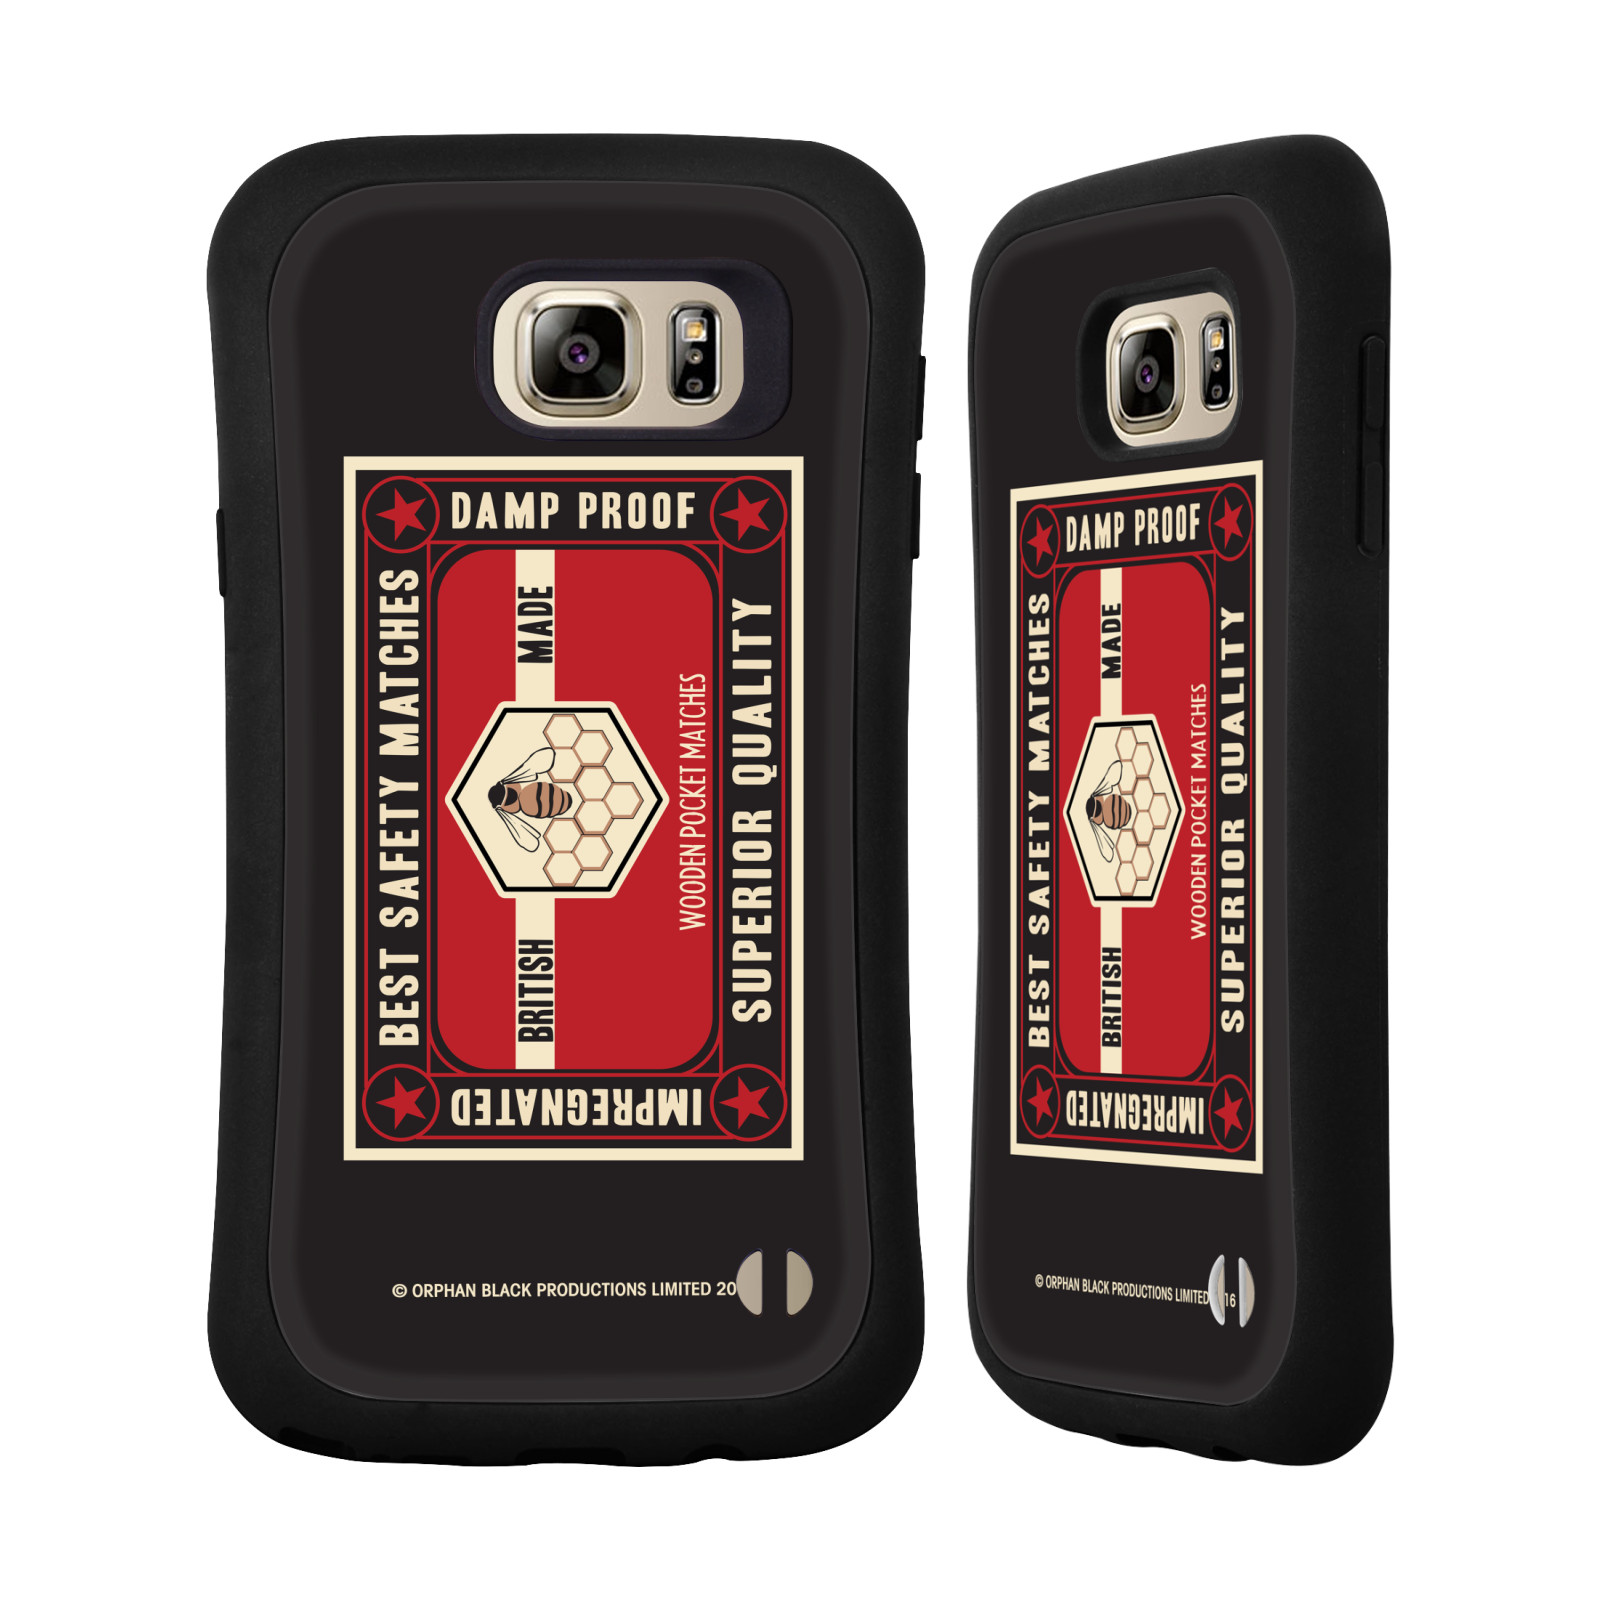 OFFICIAL ORPHAN BLACK GRAPHICS HYBRID CASE FOR SAMSUNG PHONES